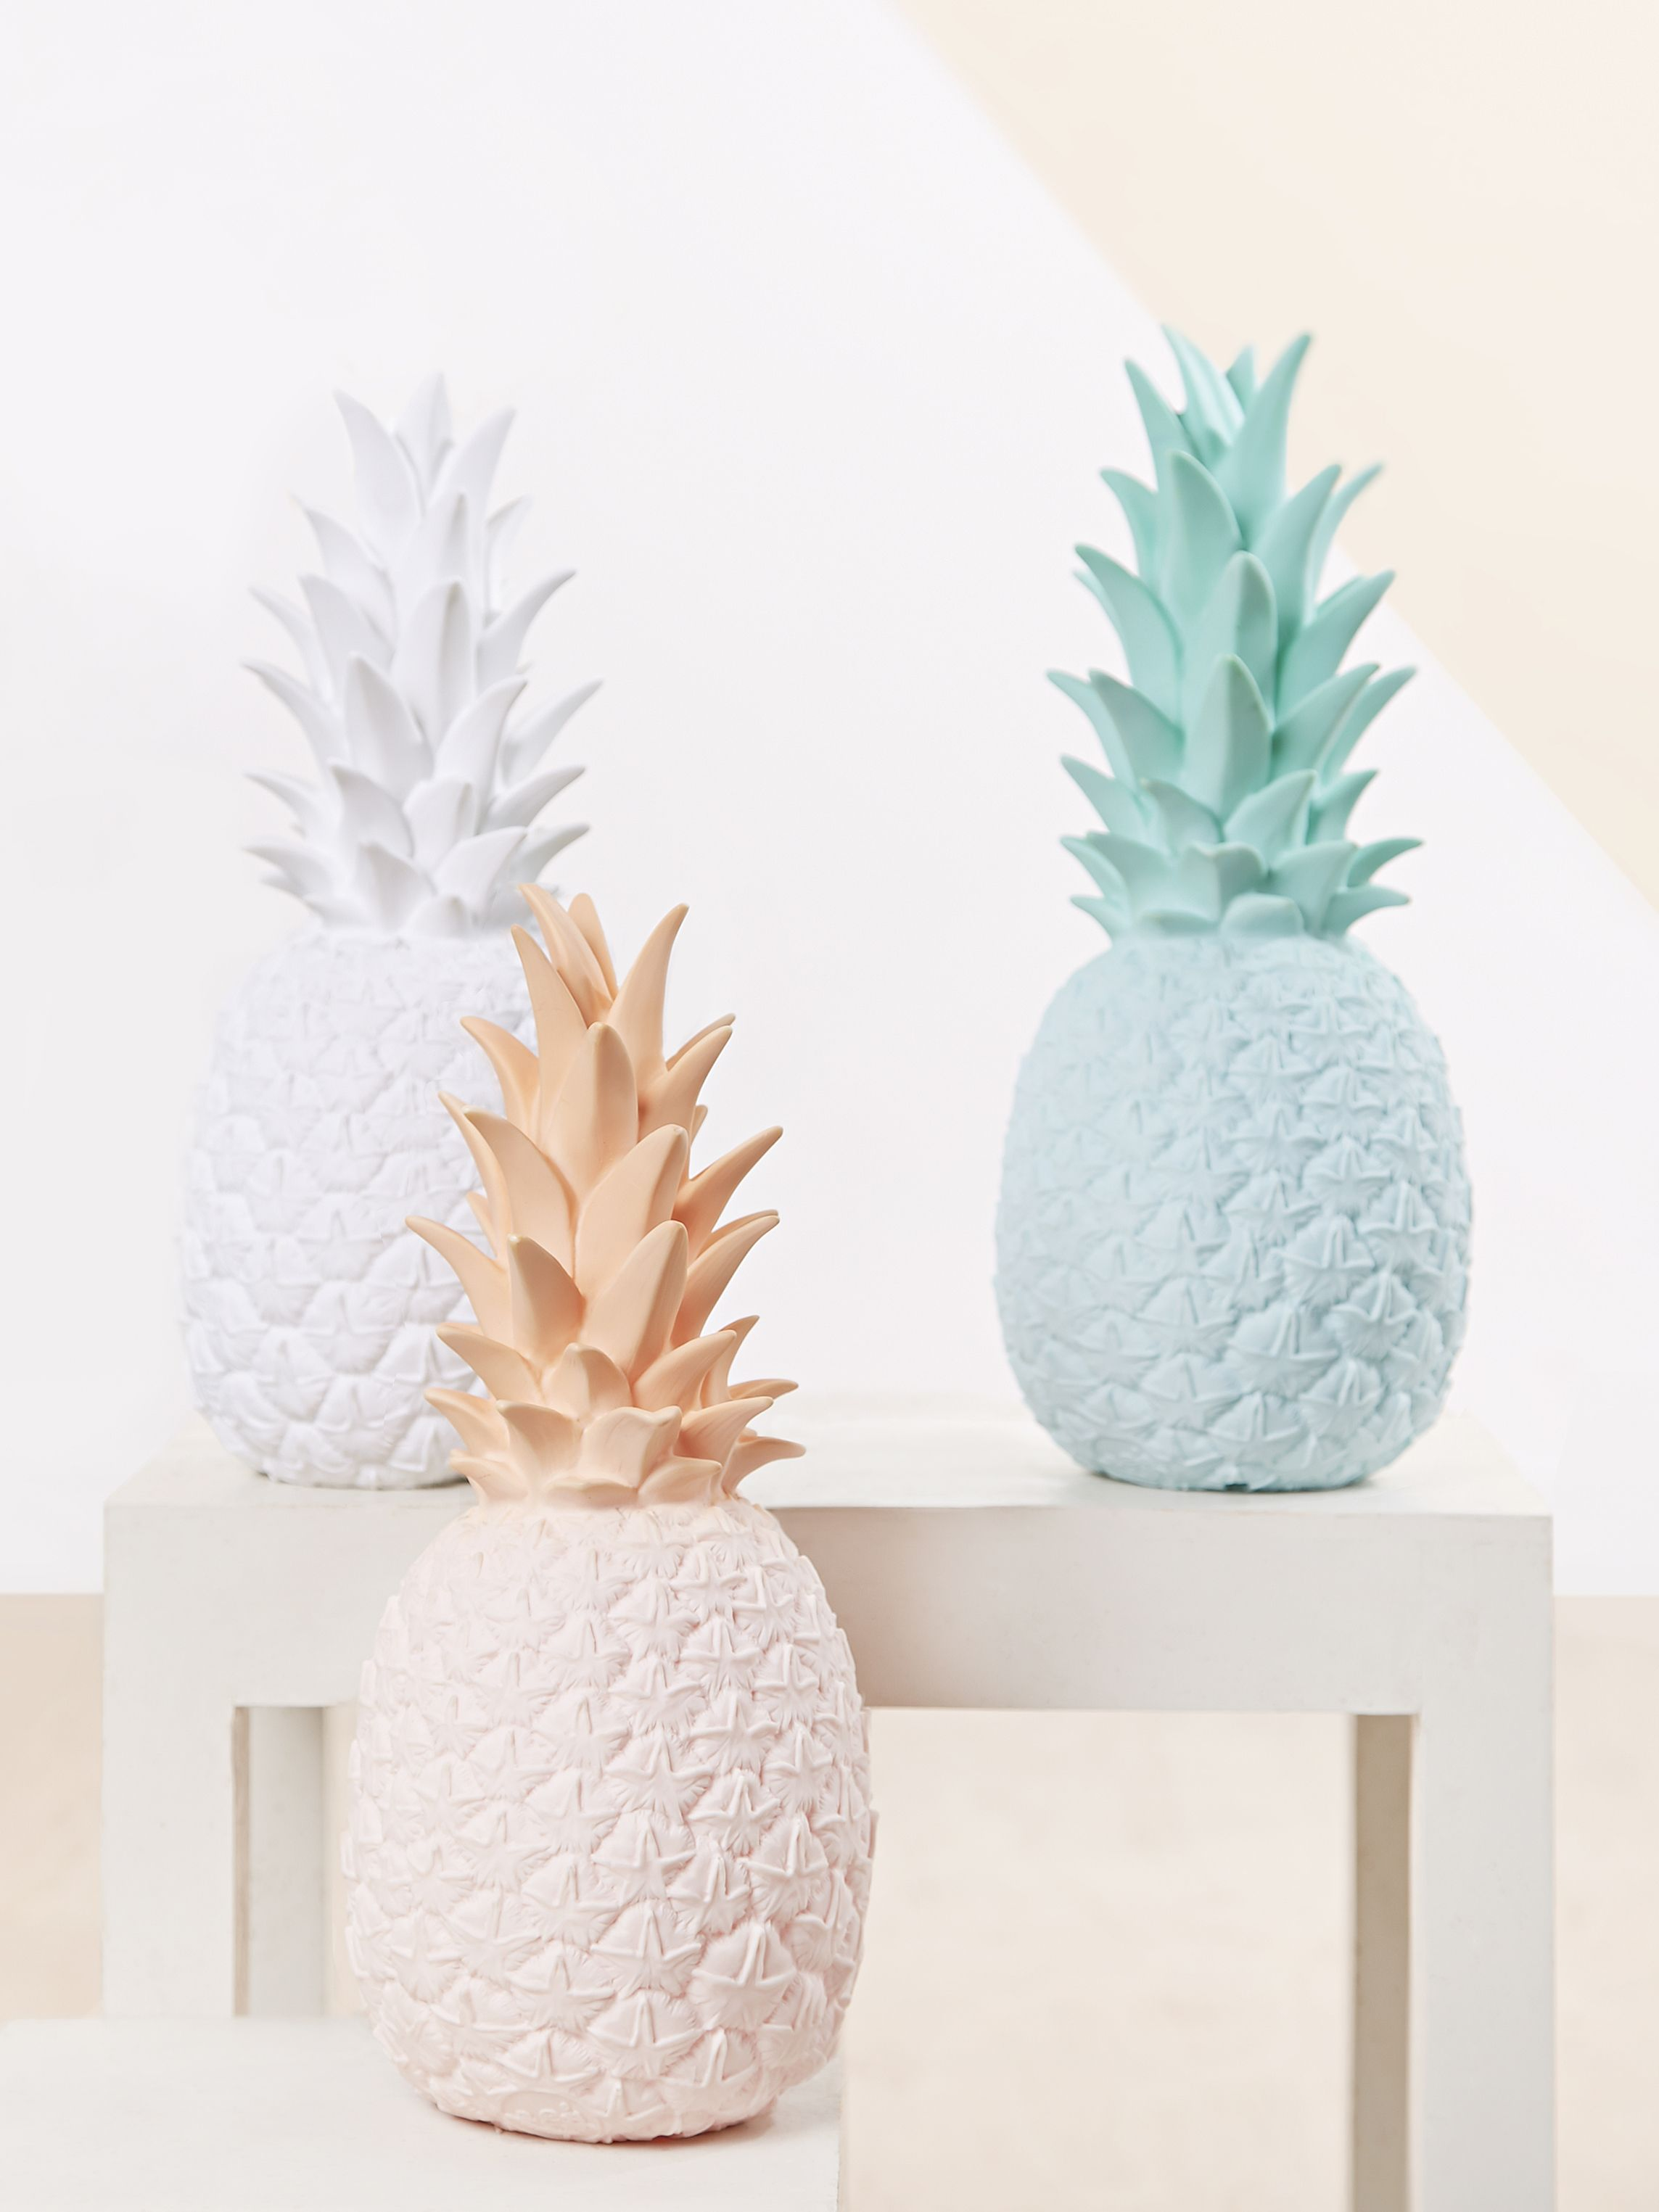 Lampes d co en forme d 39 ananas couleur pastel id es for Objet de decoration interieur